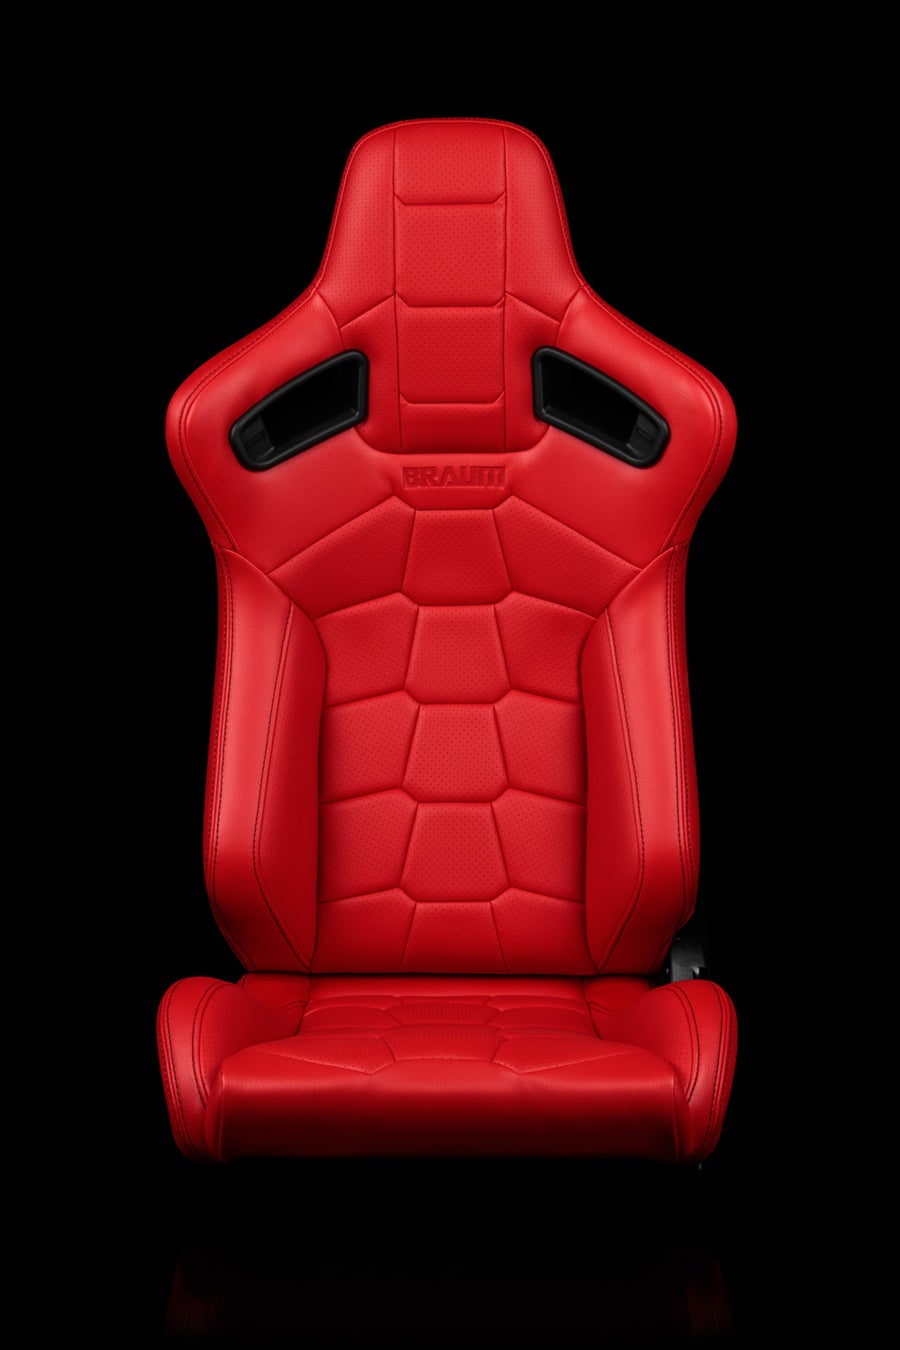 Image of Komodo Edition - Elite X Series - Braum Racing Seats (Pair)